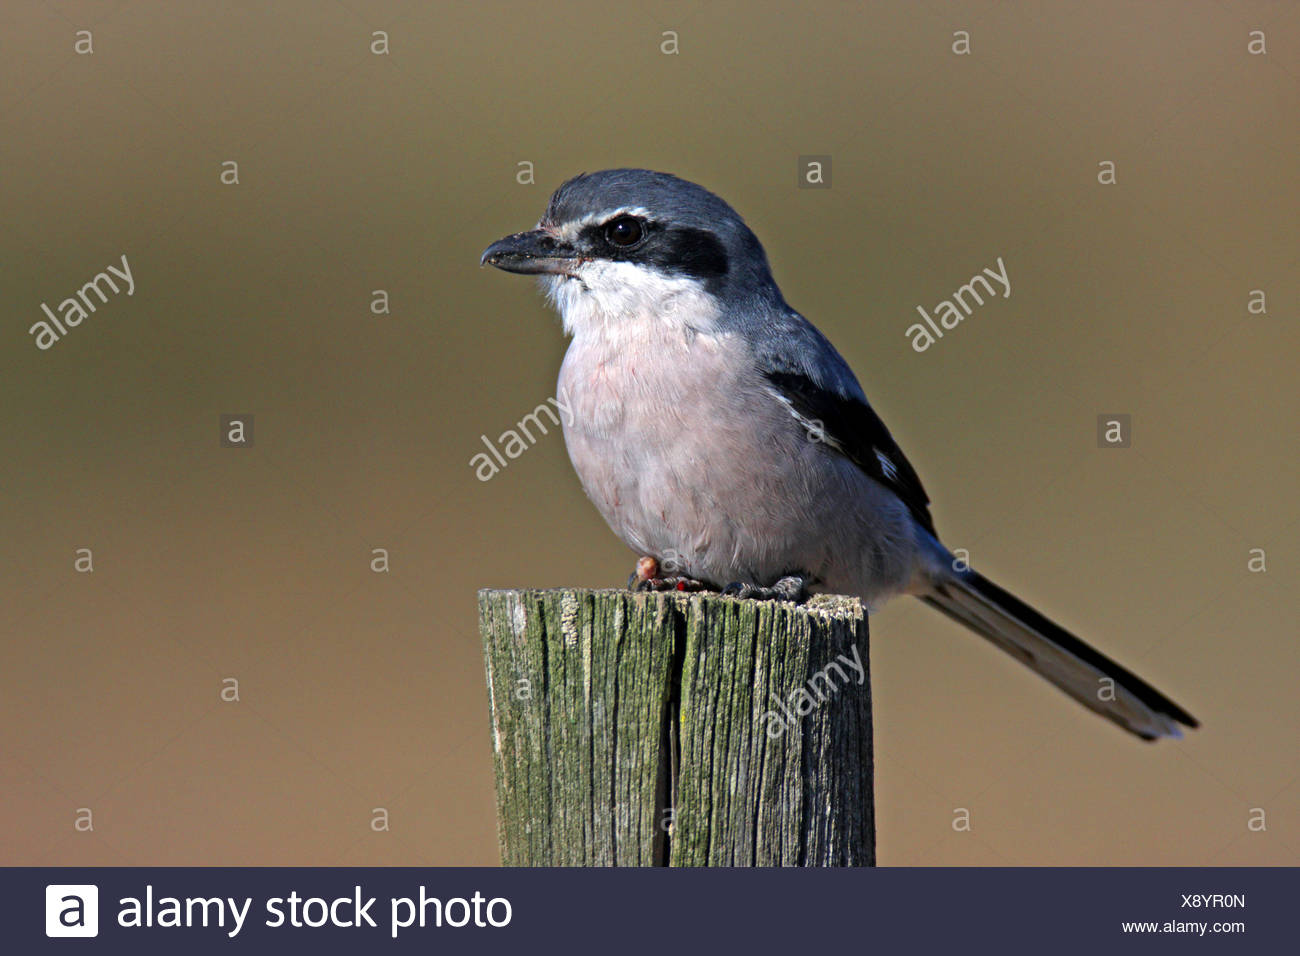 Southern Grey Shrike (Mittelmeer-Raubwuerger), sitting on a wooden post, Spain, Extremadura - Stock Image